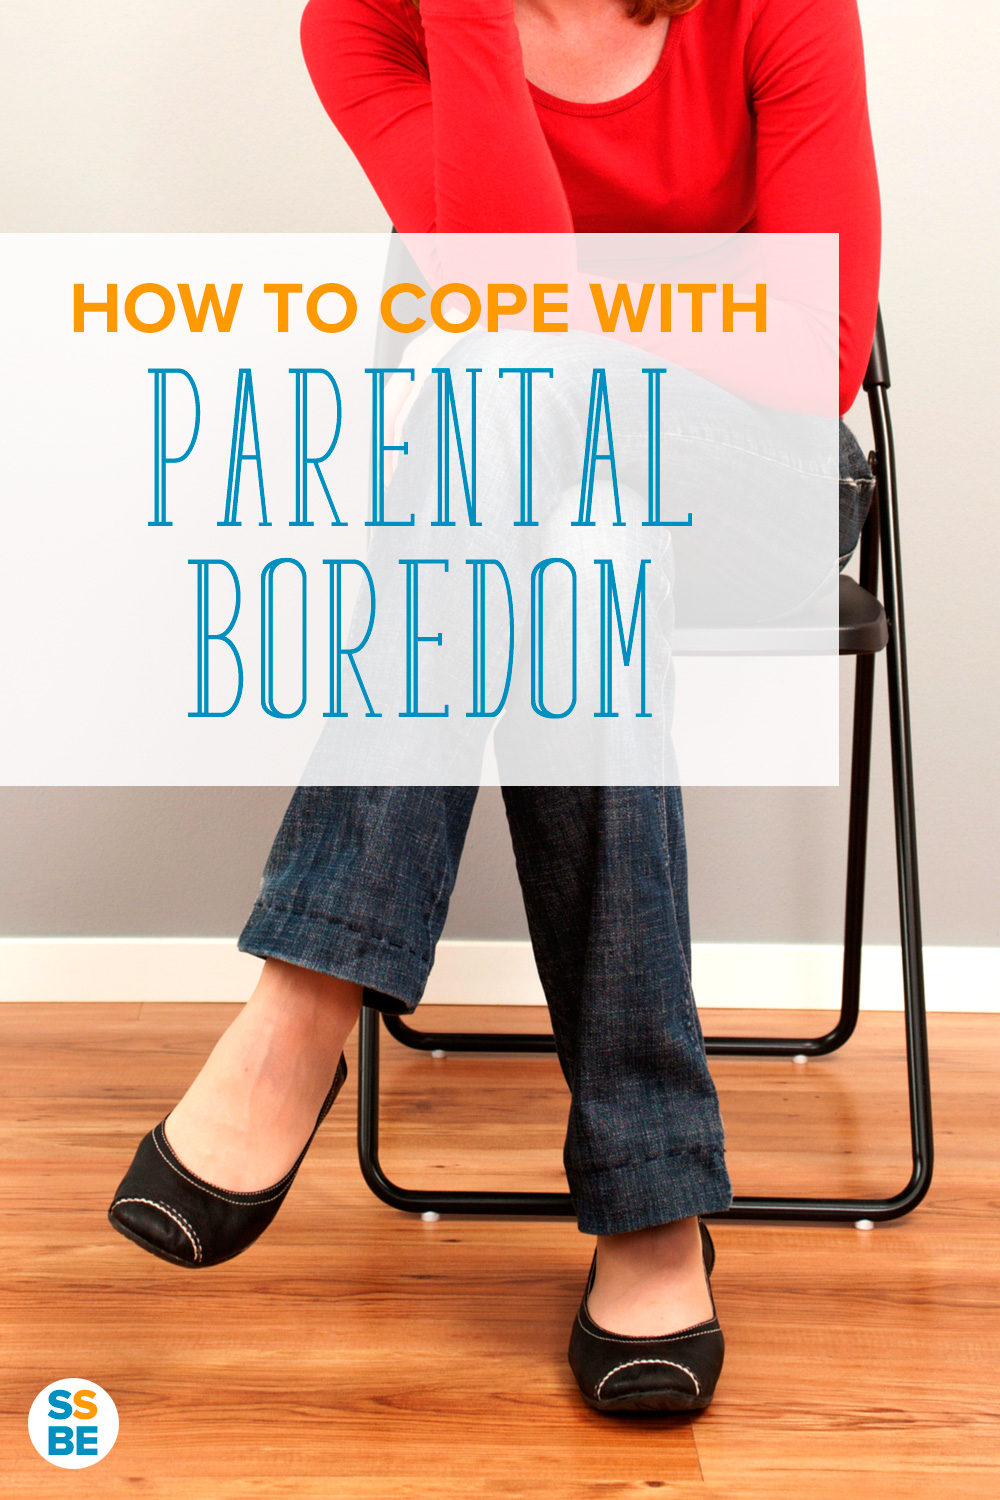 Suffering from parental boredom? Sometimes playing with kids get tiresome. Here are tips for those days when you're bored playing with your kids.